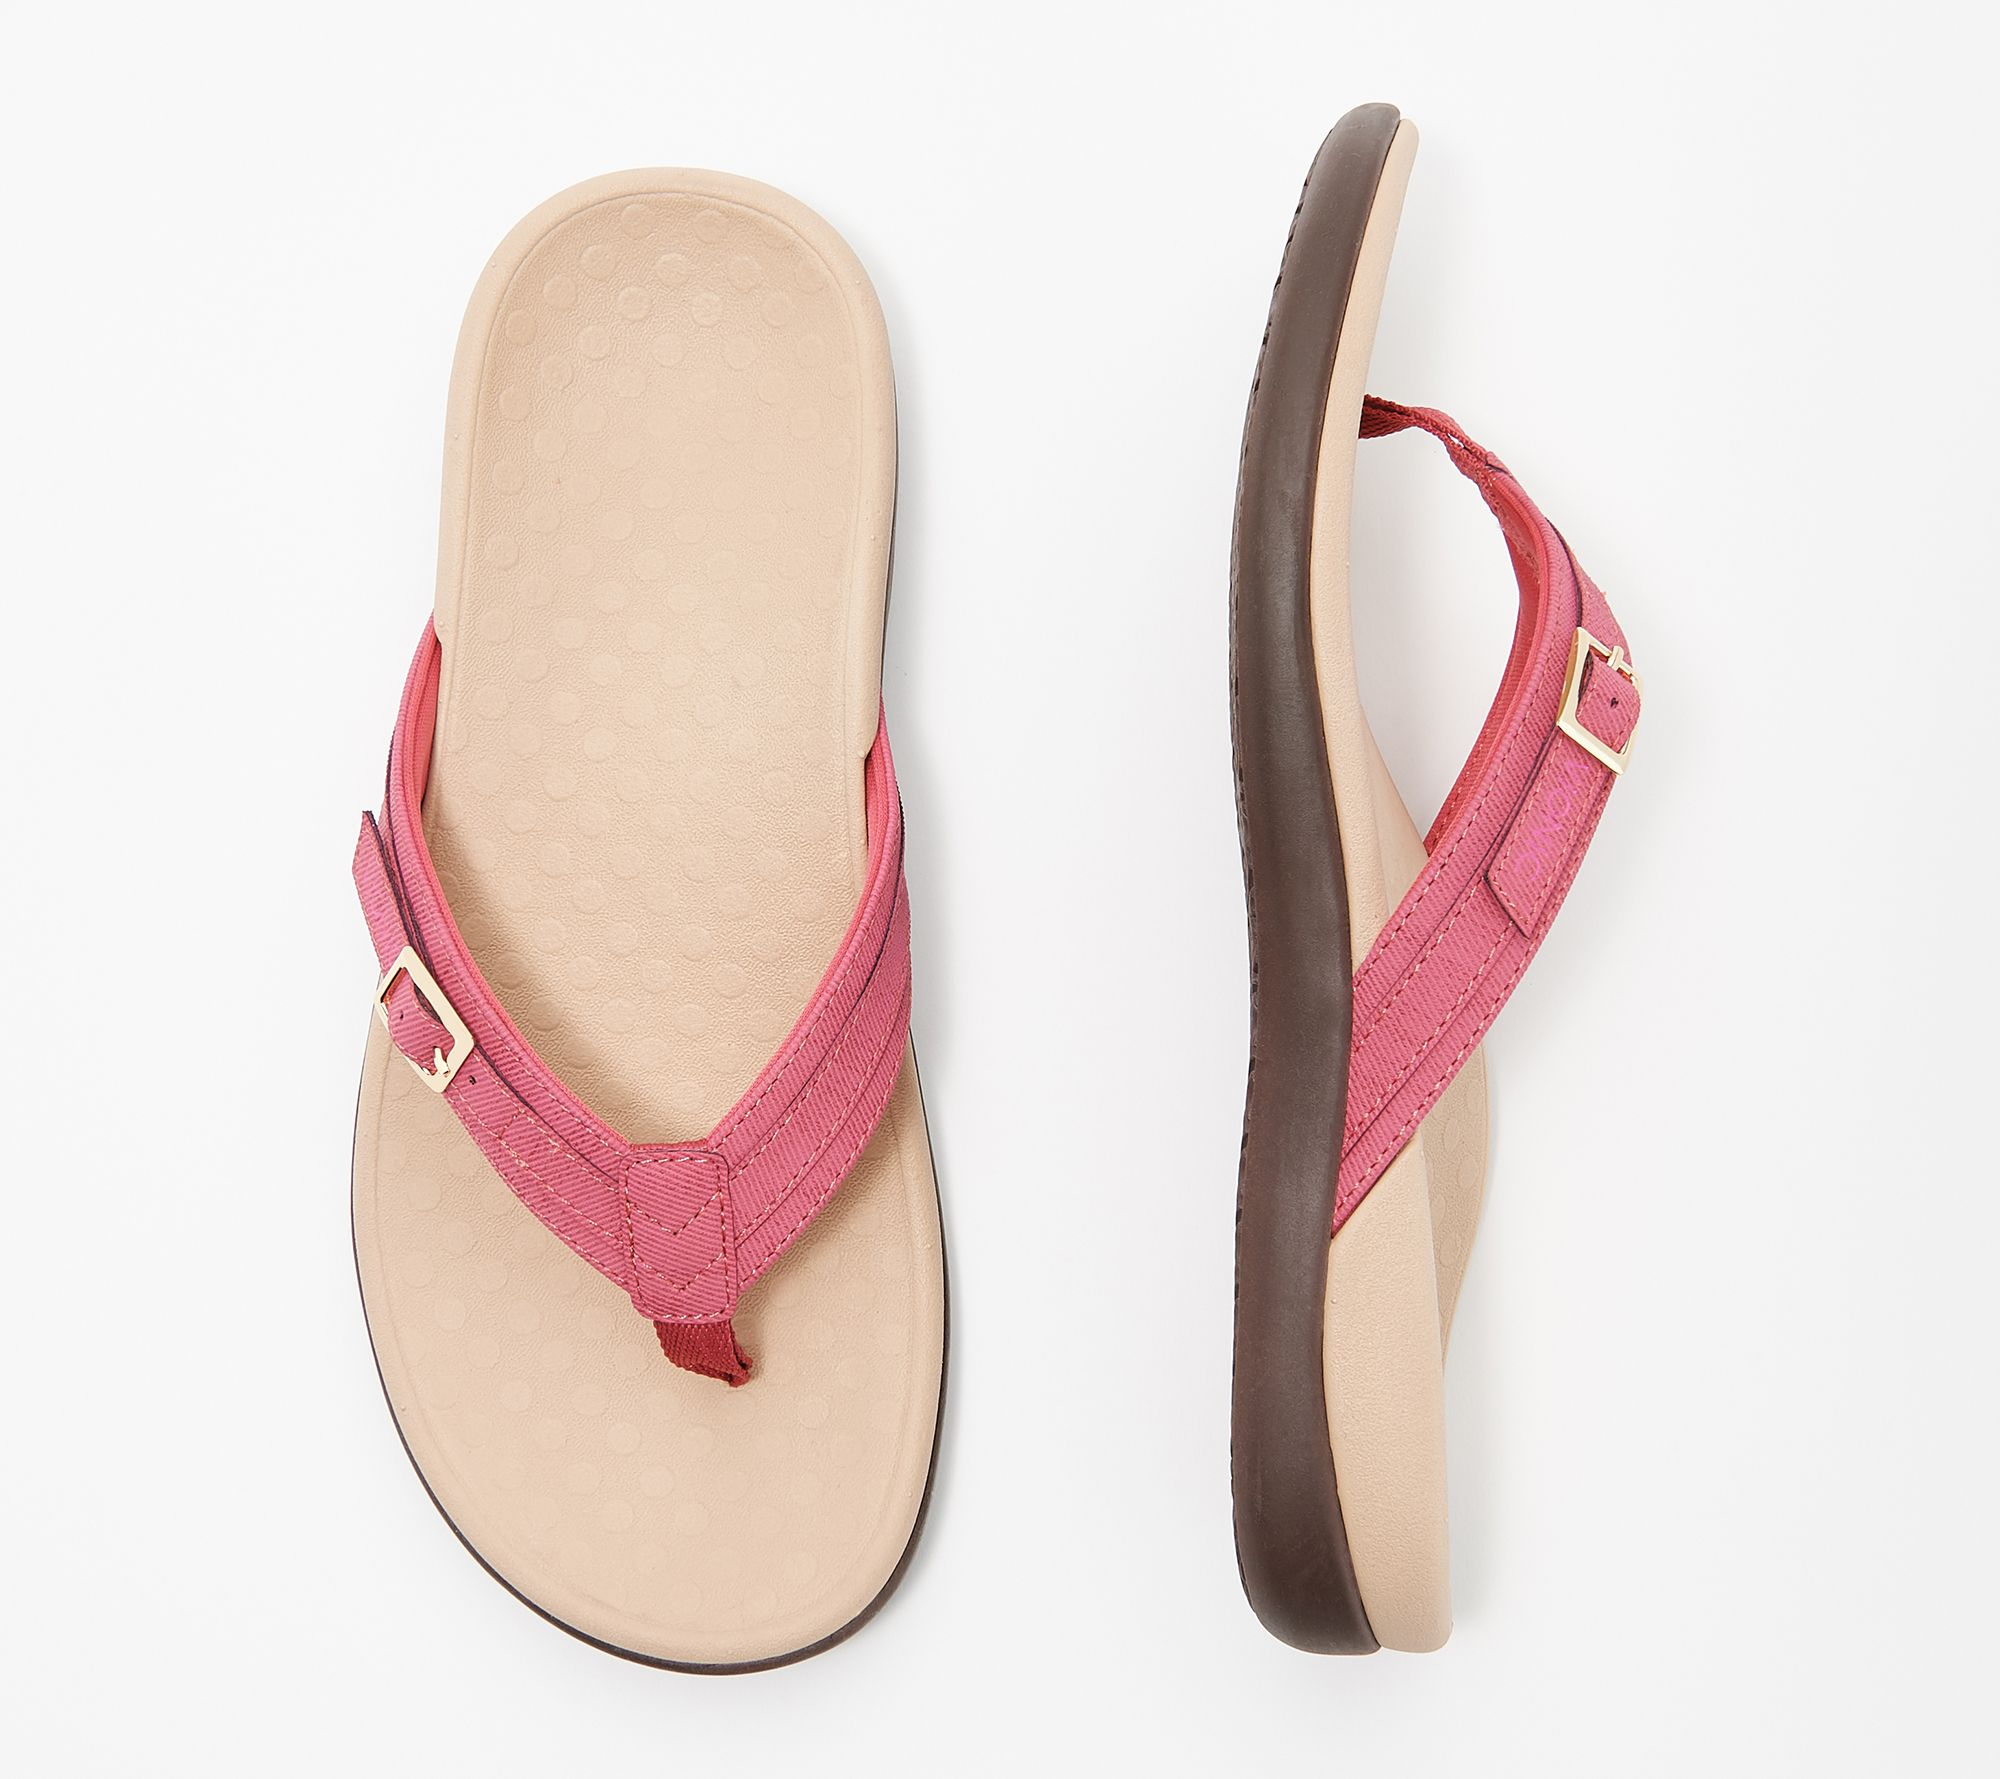 pretty cheap stable quality new list Vionic Thong Sandals with Buckle Detail - Tide Patty - Page 1 ...